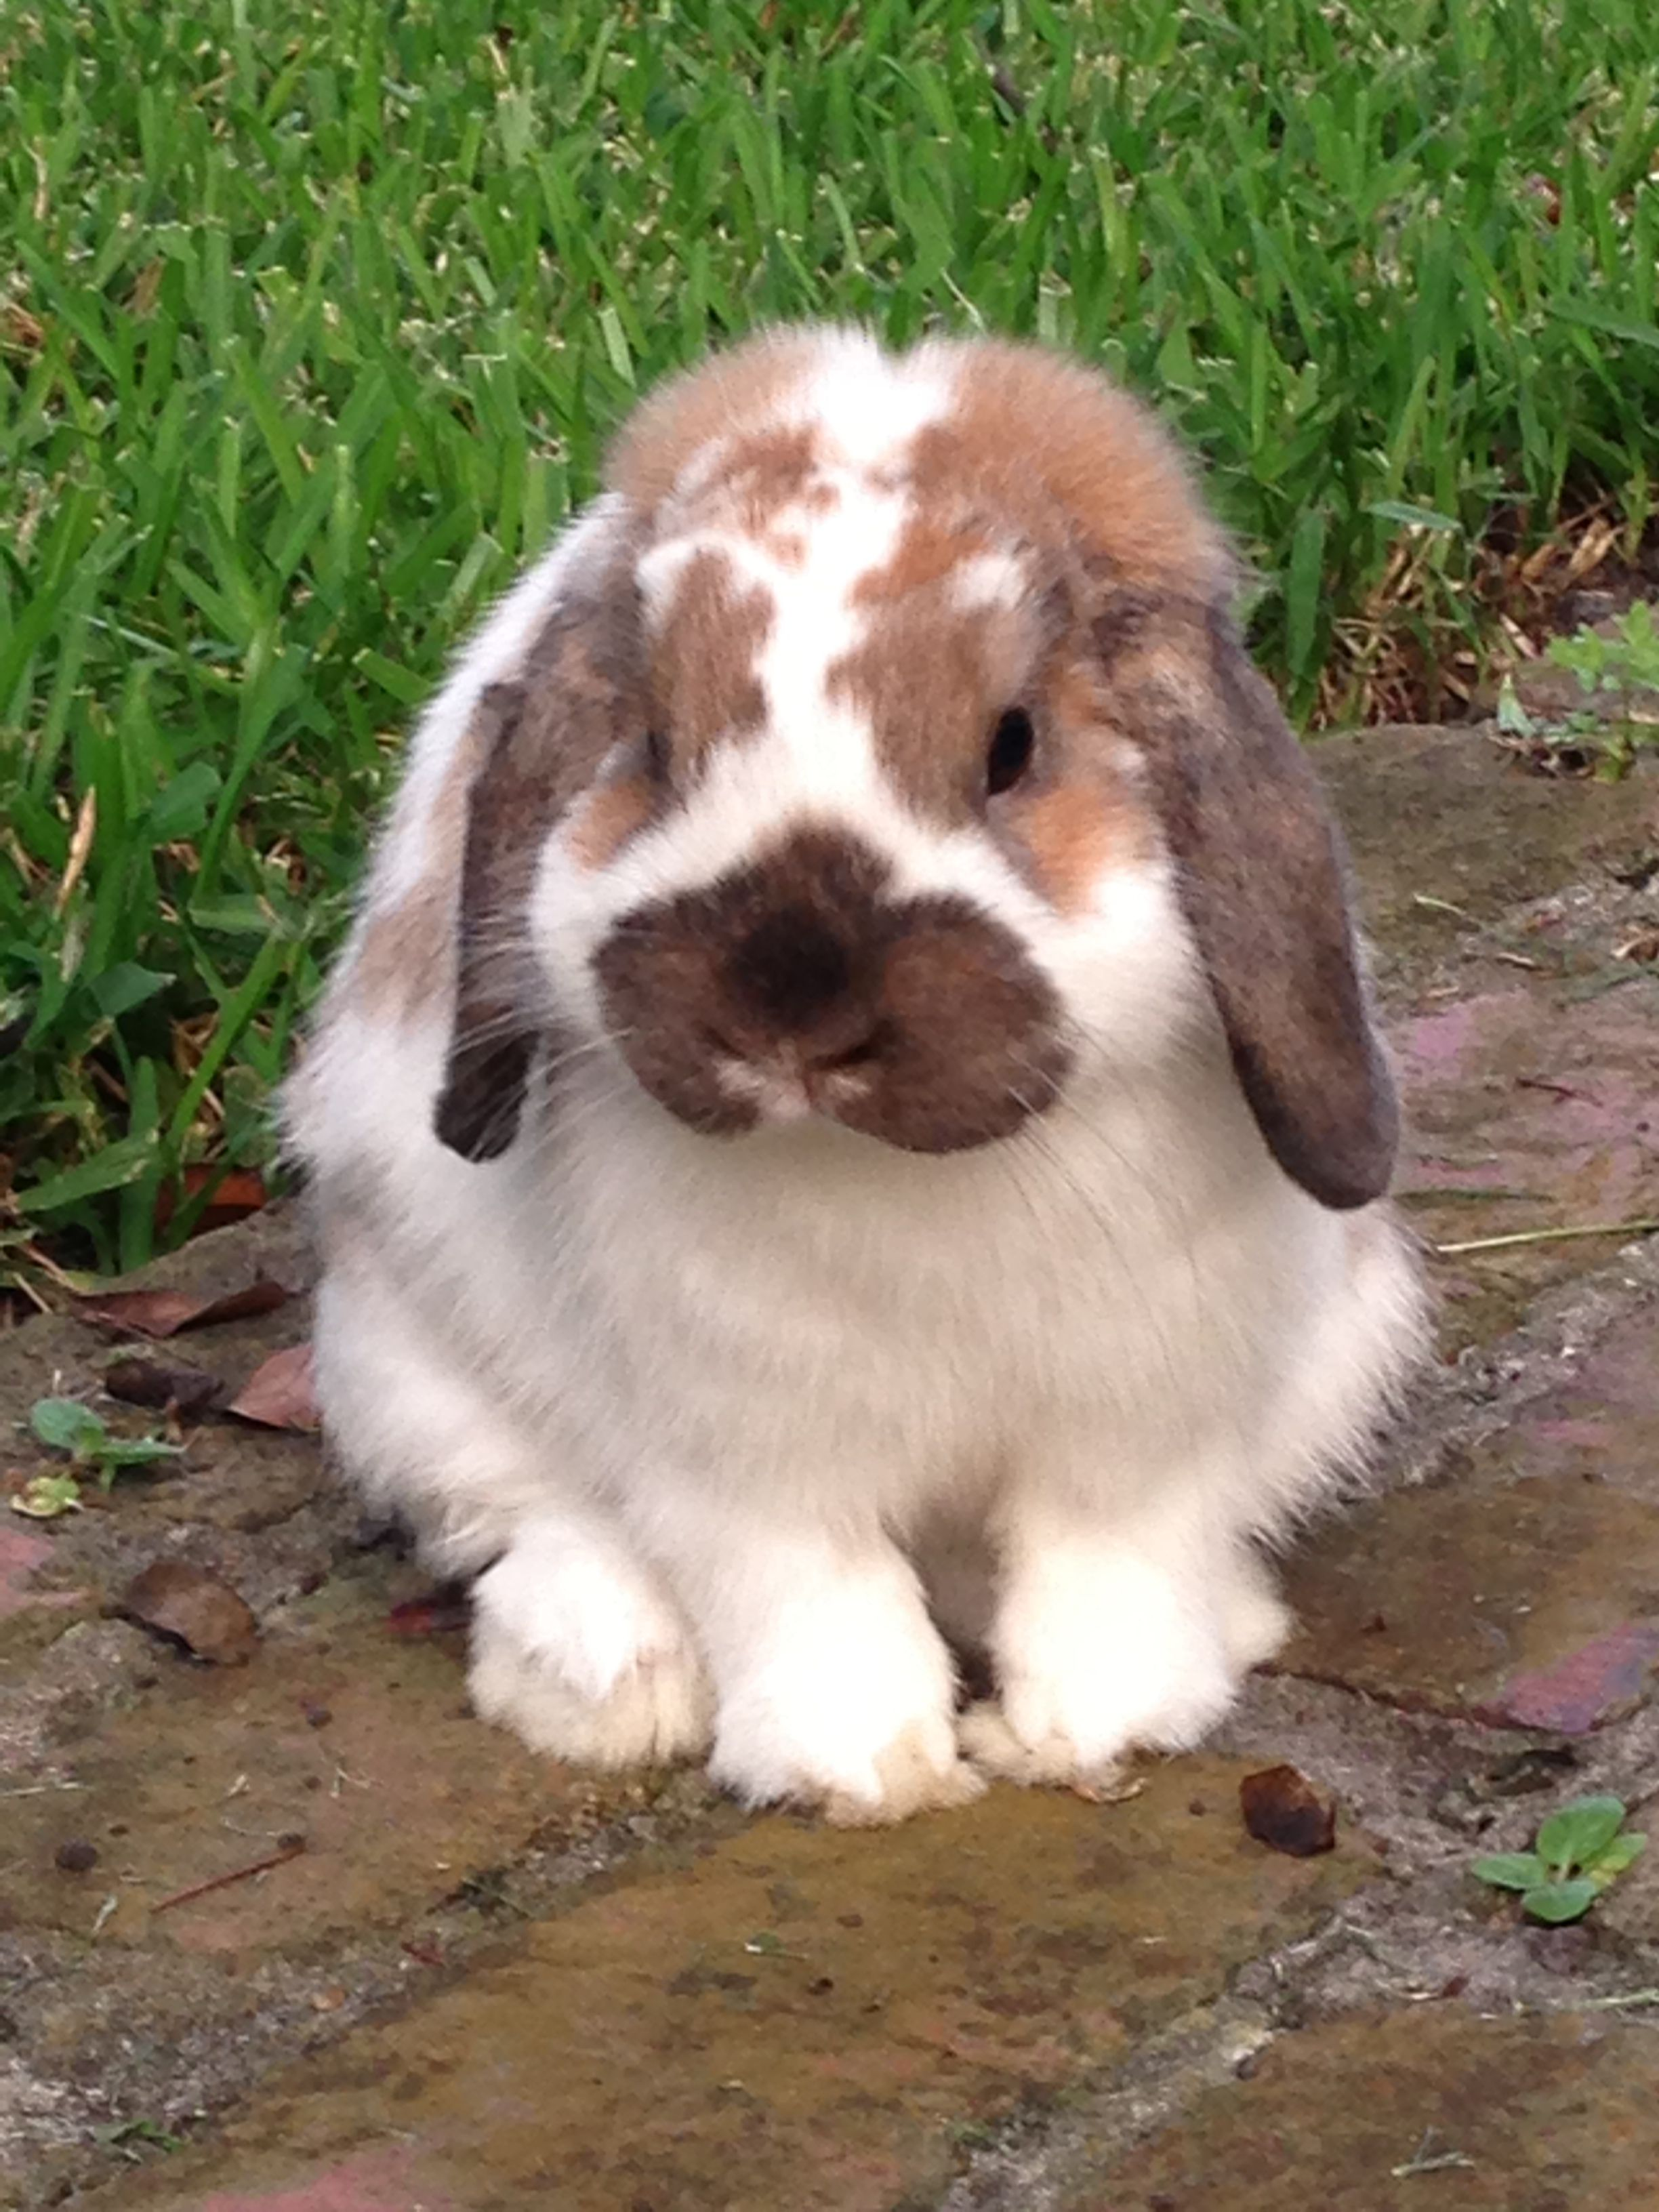 Pin By Caroline Timmermans On For The Love Of Bunnies Pet Bunny Cute Baby Bunnies Fluffy Bunny